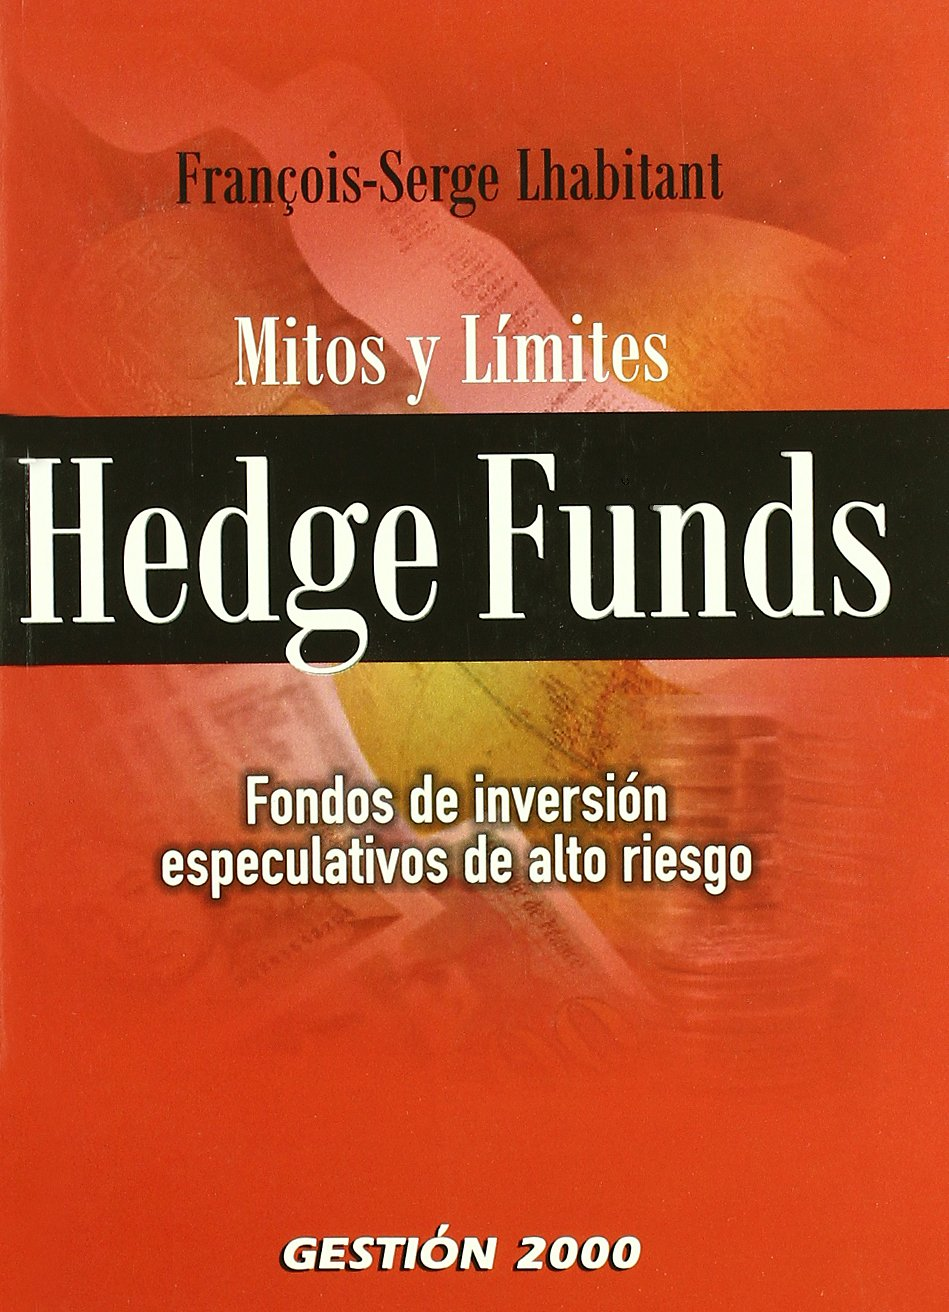 Hedge Funds. Mitos y limites. Fondos de inversion especulativos de alto riesgo (Spanish) Paperback – 2010